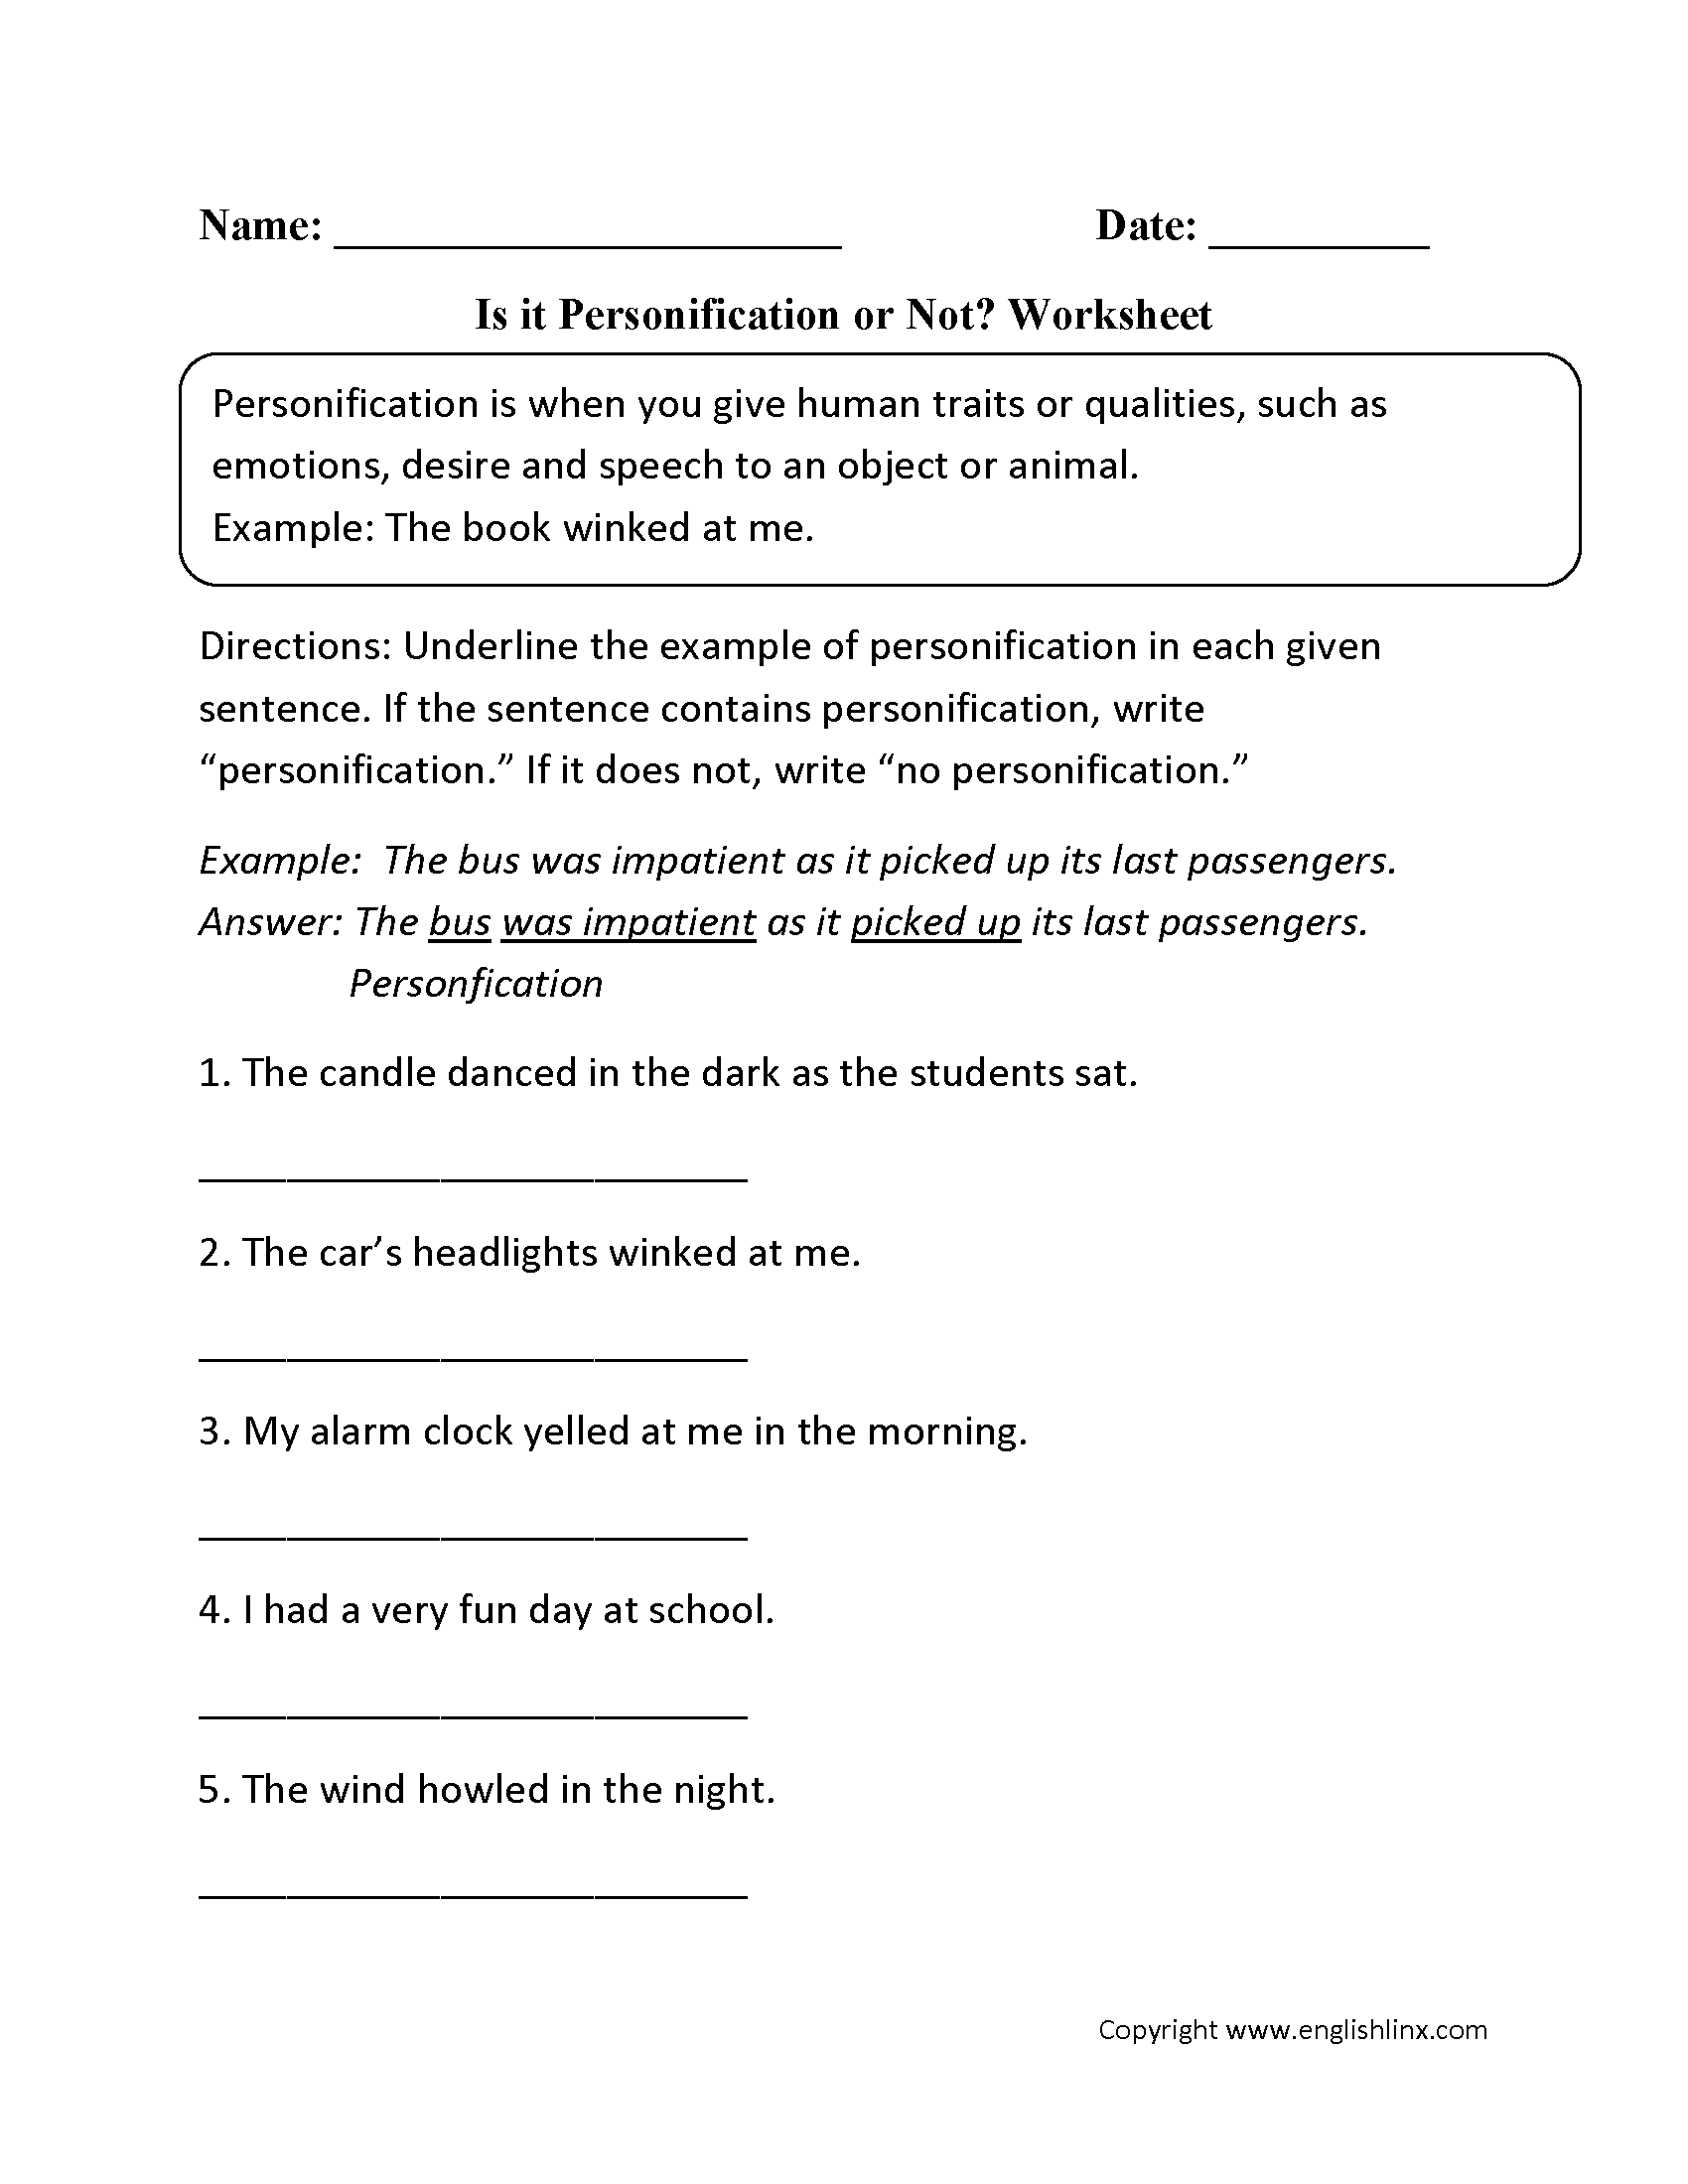 Is It Personification Or Not Worksheet